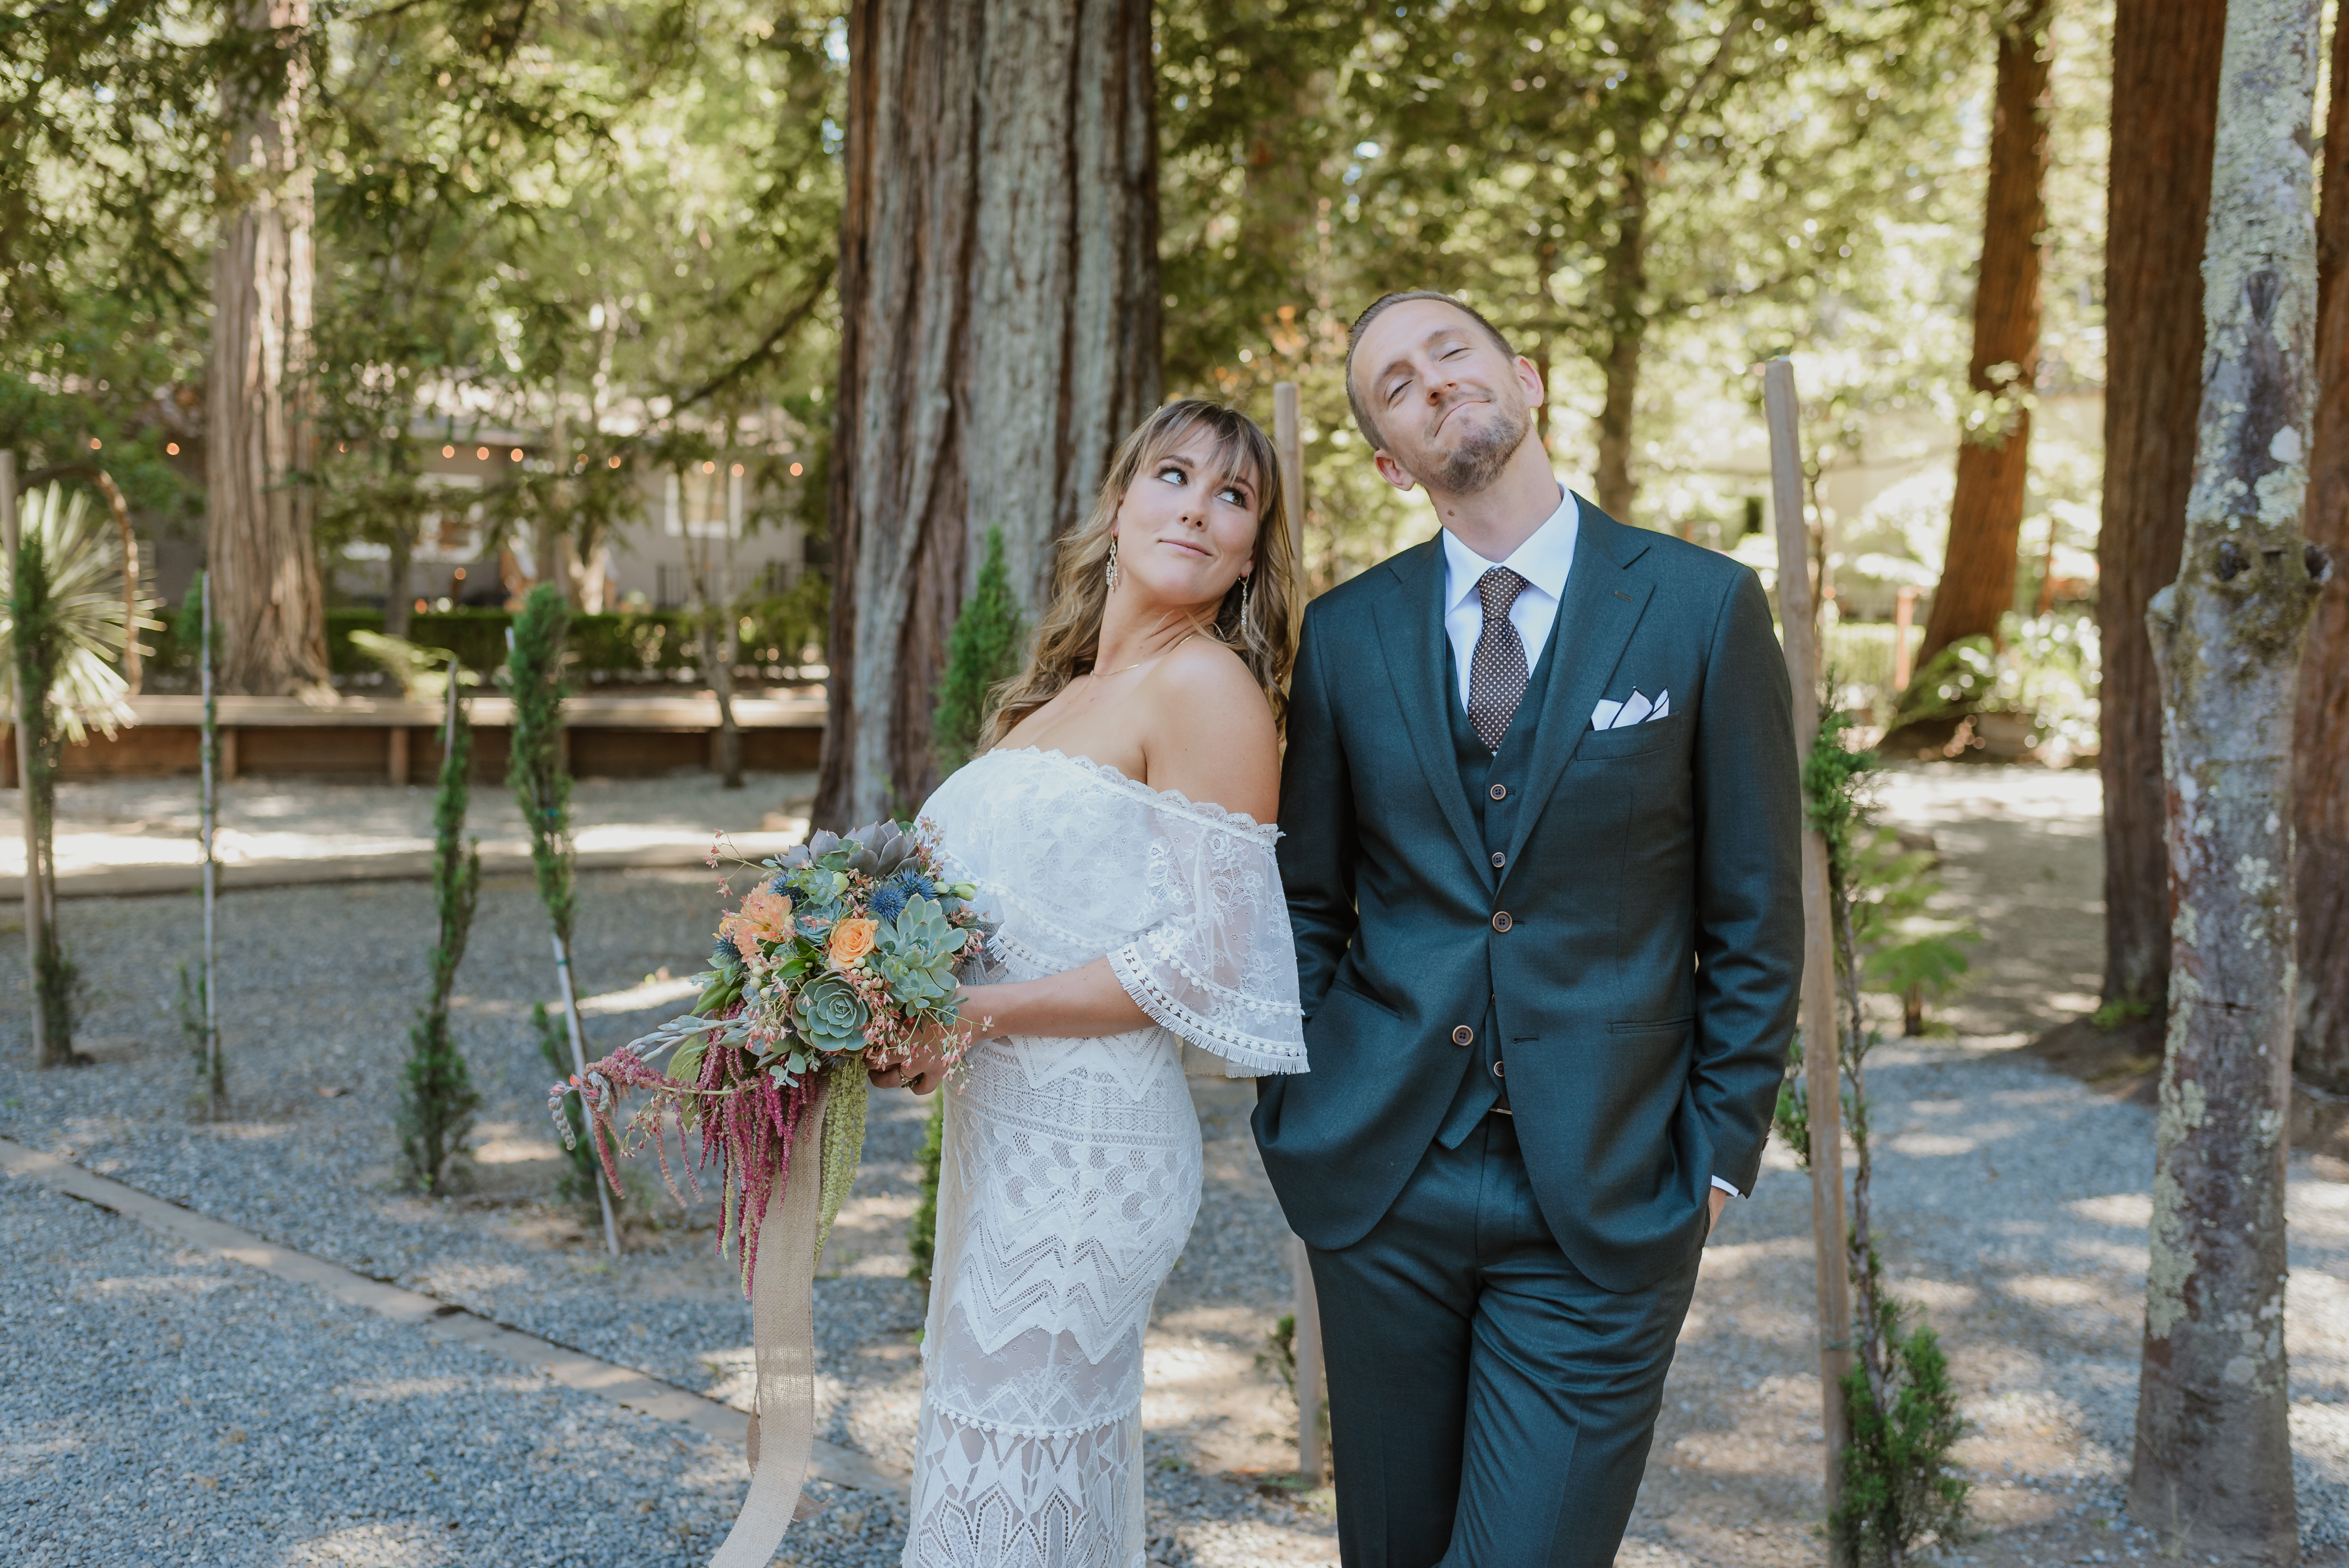 book 2020 weddings with succulents for hire, succulent wedding, eco-friendly wedding, sustainable wedding redwood wedding at Deer Park Villa in Fairfax, CA